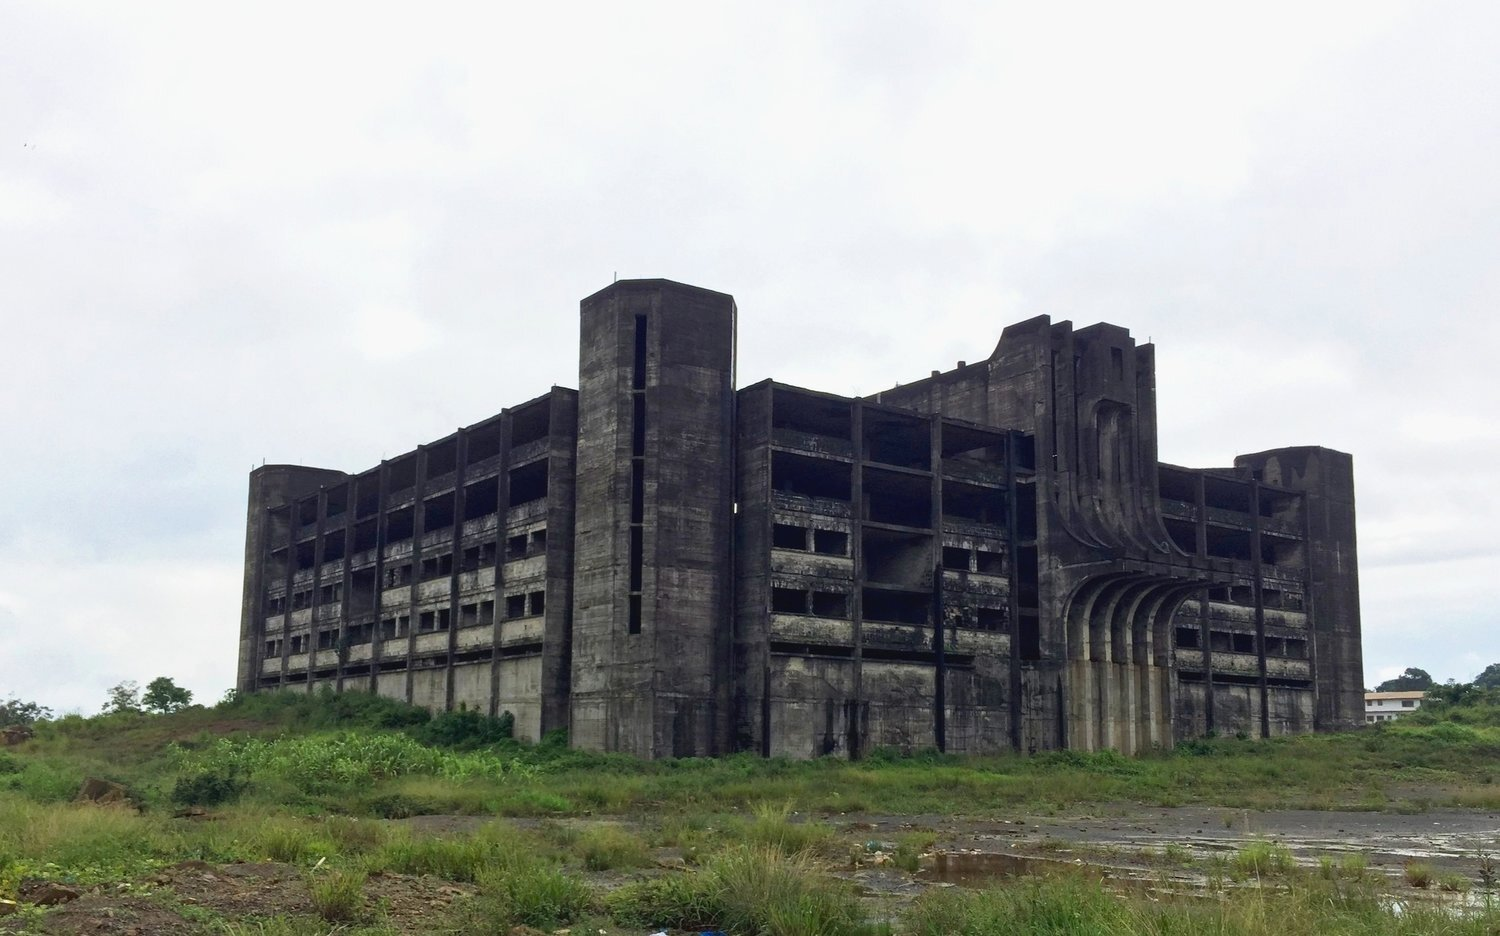 The unfinished ministry of defense building in Monrovia (2016). The building has since been torn down to make way for new ministry buildings.